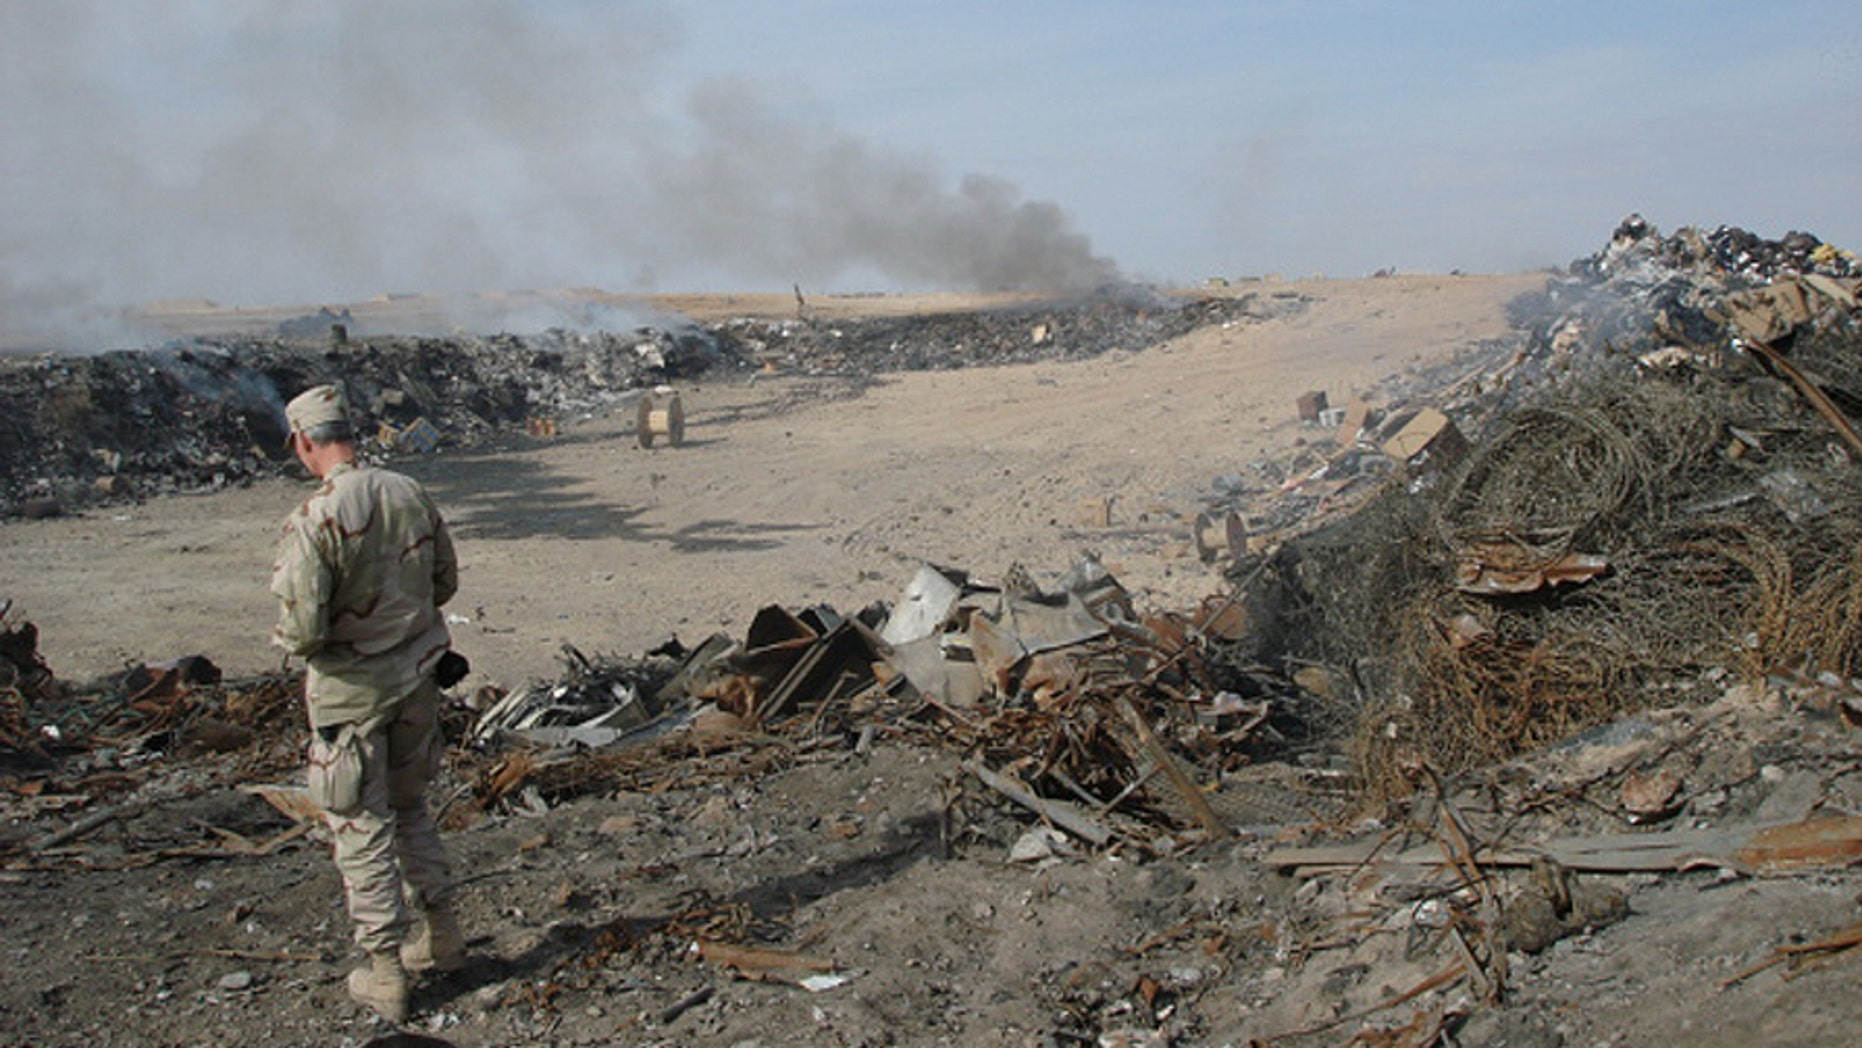 The Supreme Court upheld a recent ruling in the court of appeals that dozens of lawsuits against military contractor Kellogg, Brown, and Root regarding the use of burn pits could not go forward.